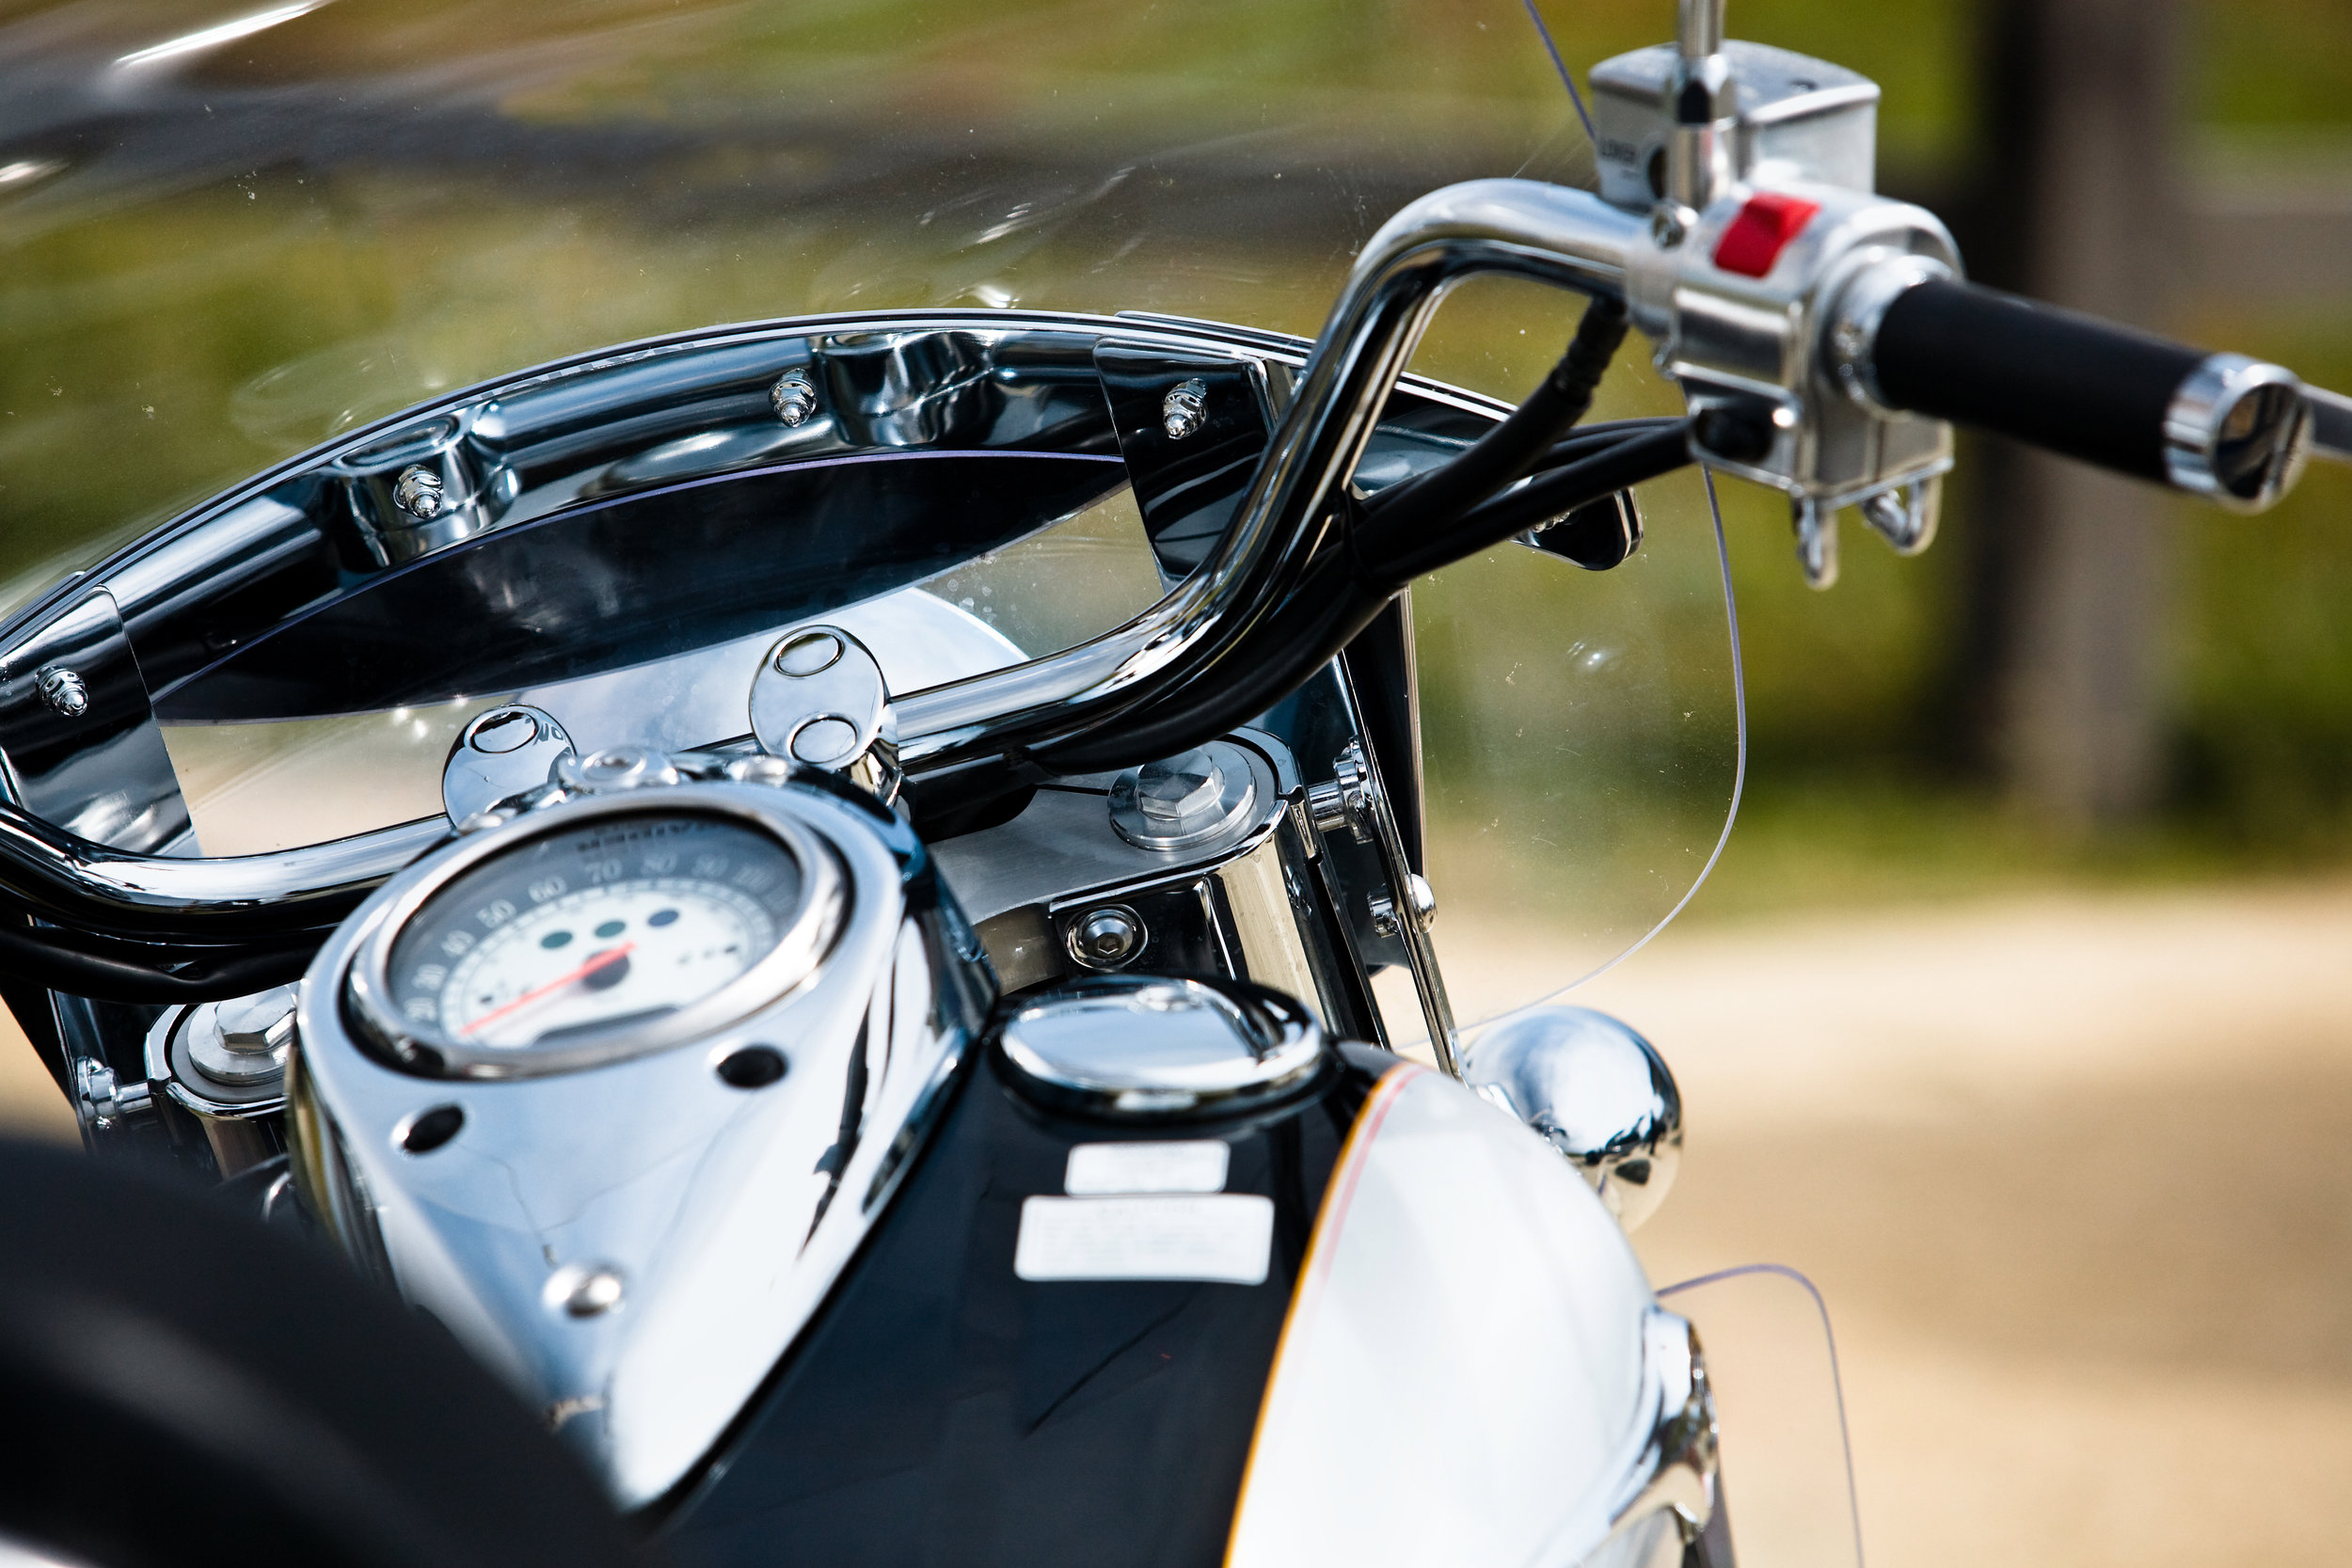 Motorcycles & Motorsports - These can include:• Motorcycle• ATV (All-terrain vehicle) insurance• Dirt bike insurance• Dune buggy insurance• Golf cart insurance• Snowmobile insurance• Any other motorsports insurance